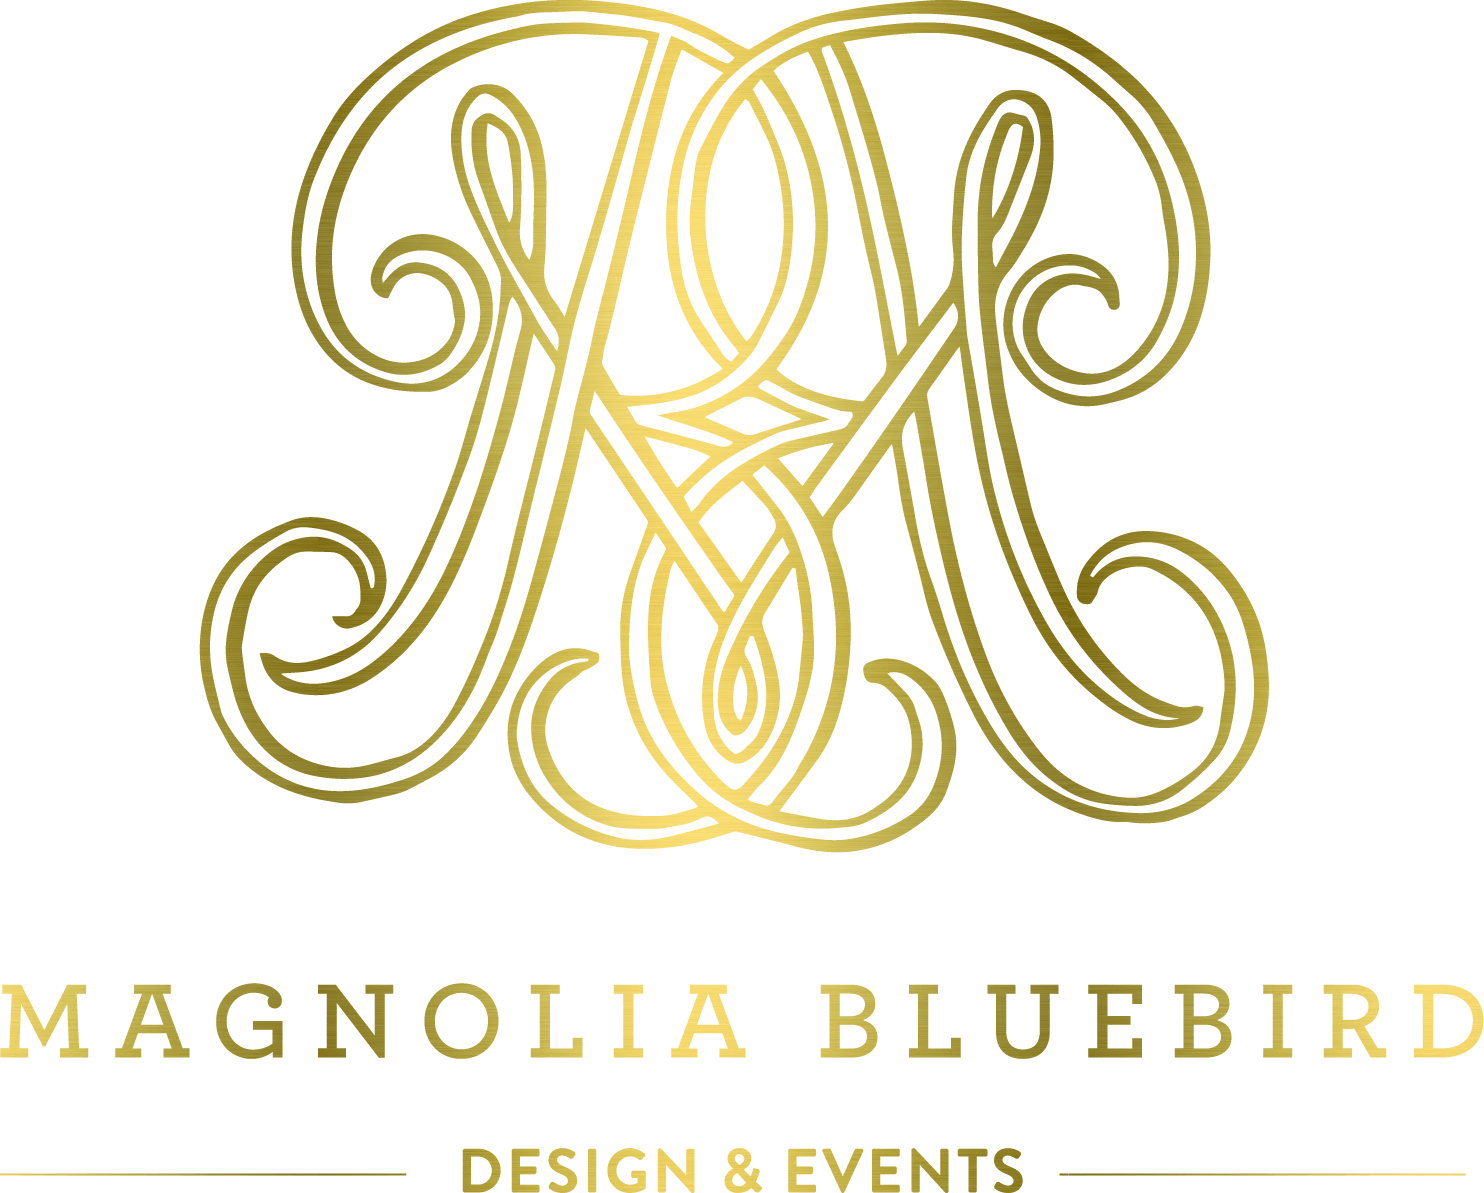 Magnolia Bluebird design & events